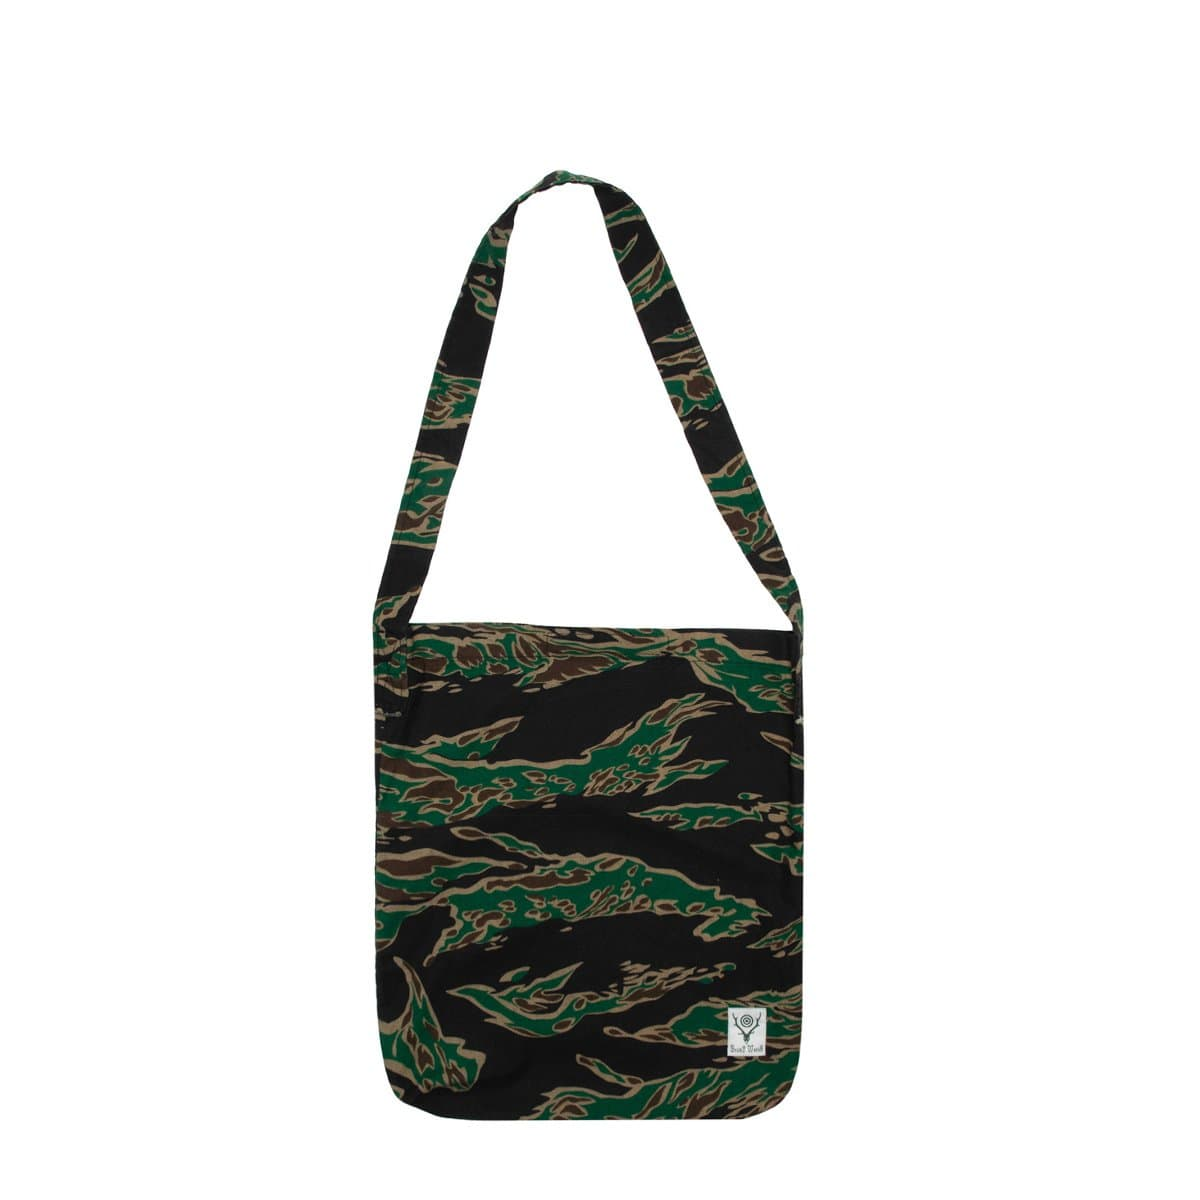 South2 West8 Bags & Accessories TIGER CAMO / O/S BOOK BAG